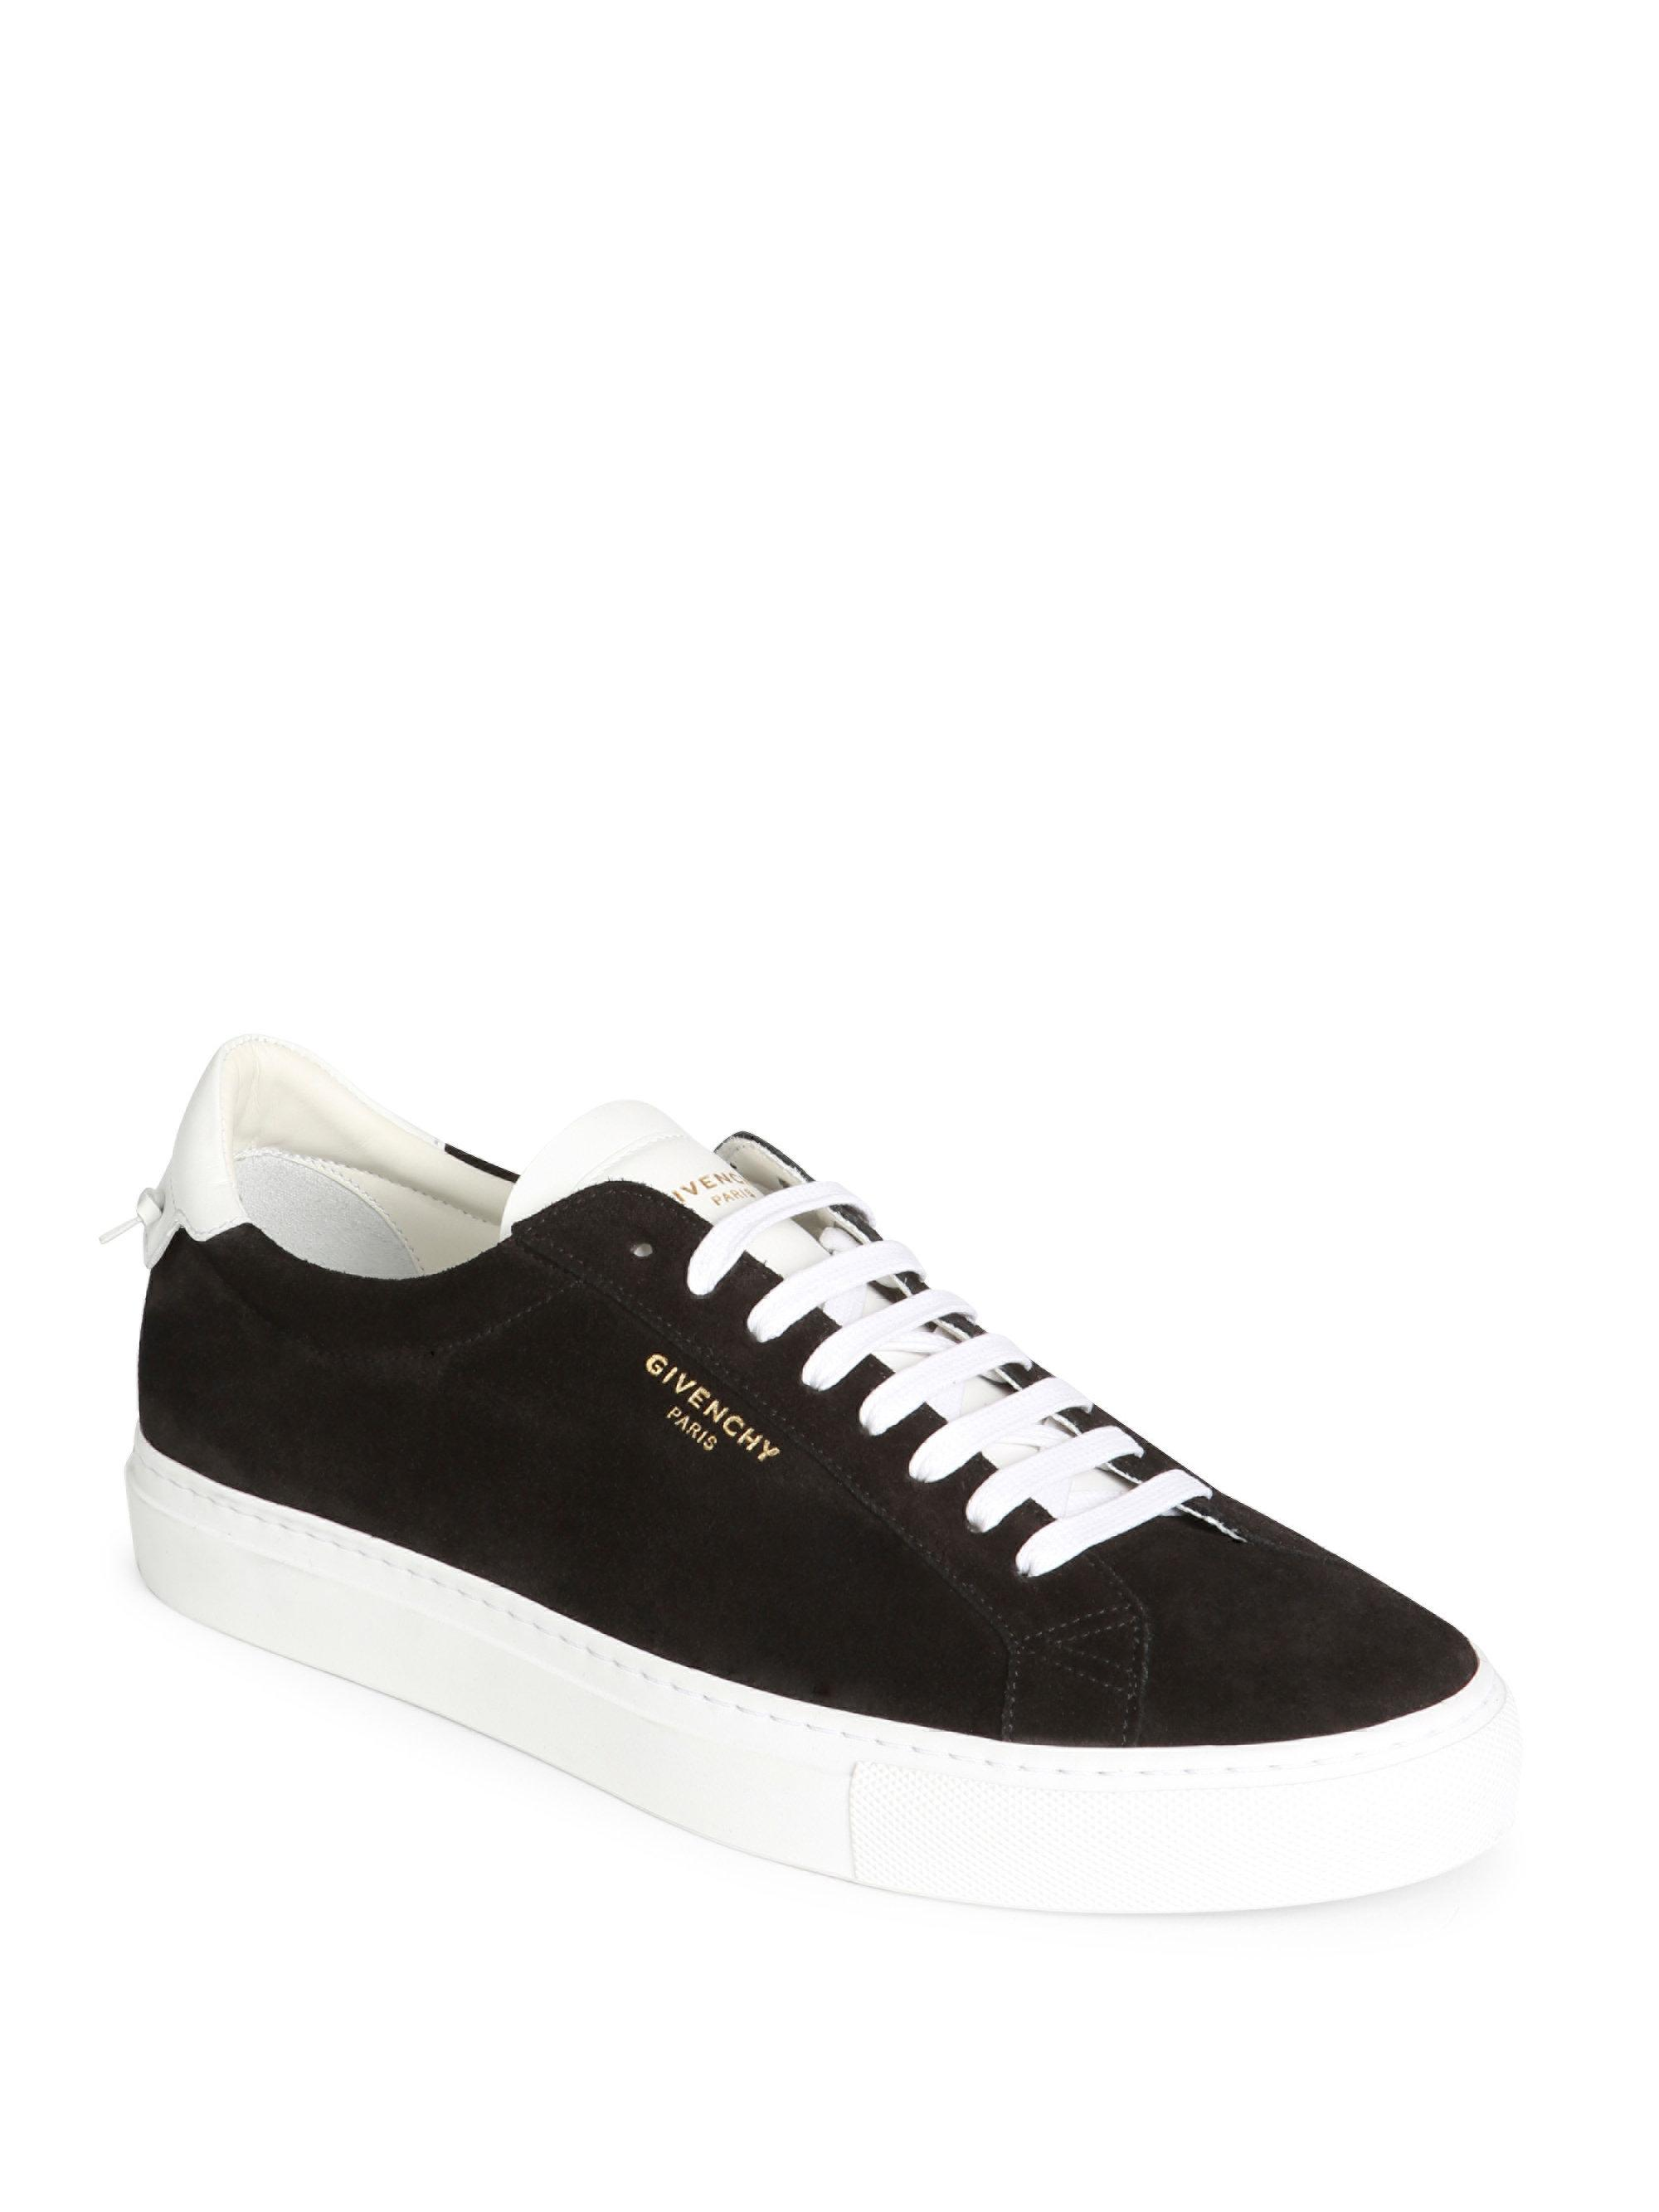 4103b2a07cd Lyst - Givenchy Urban Low Suede Sneakers in Black for Men